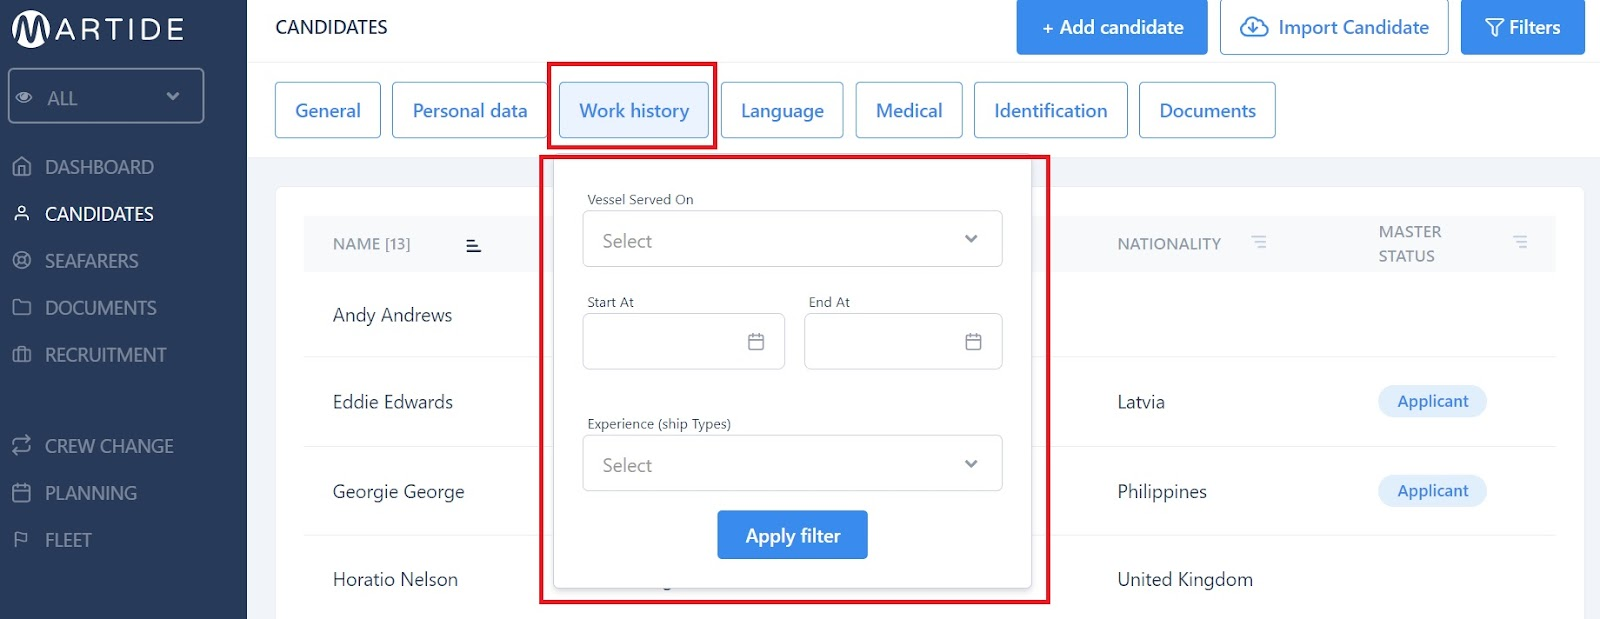 screenshot of the work history filter details